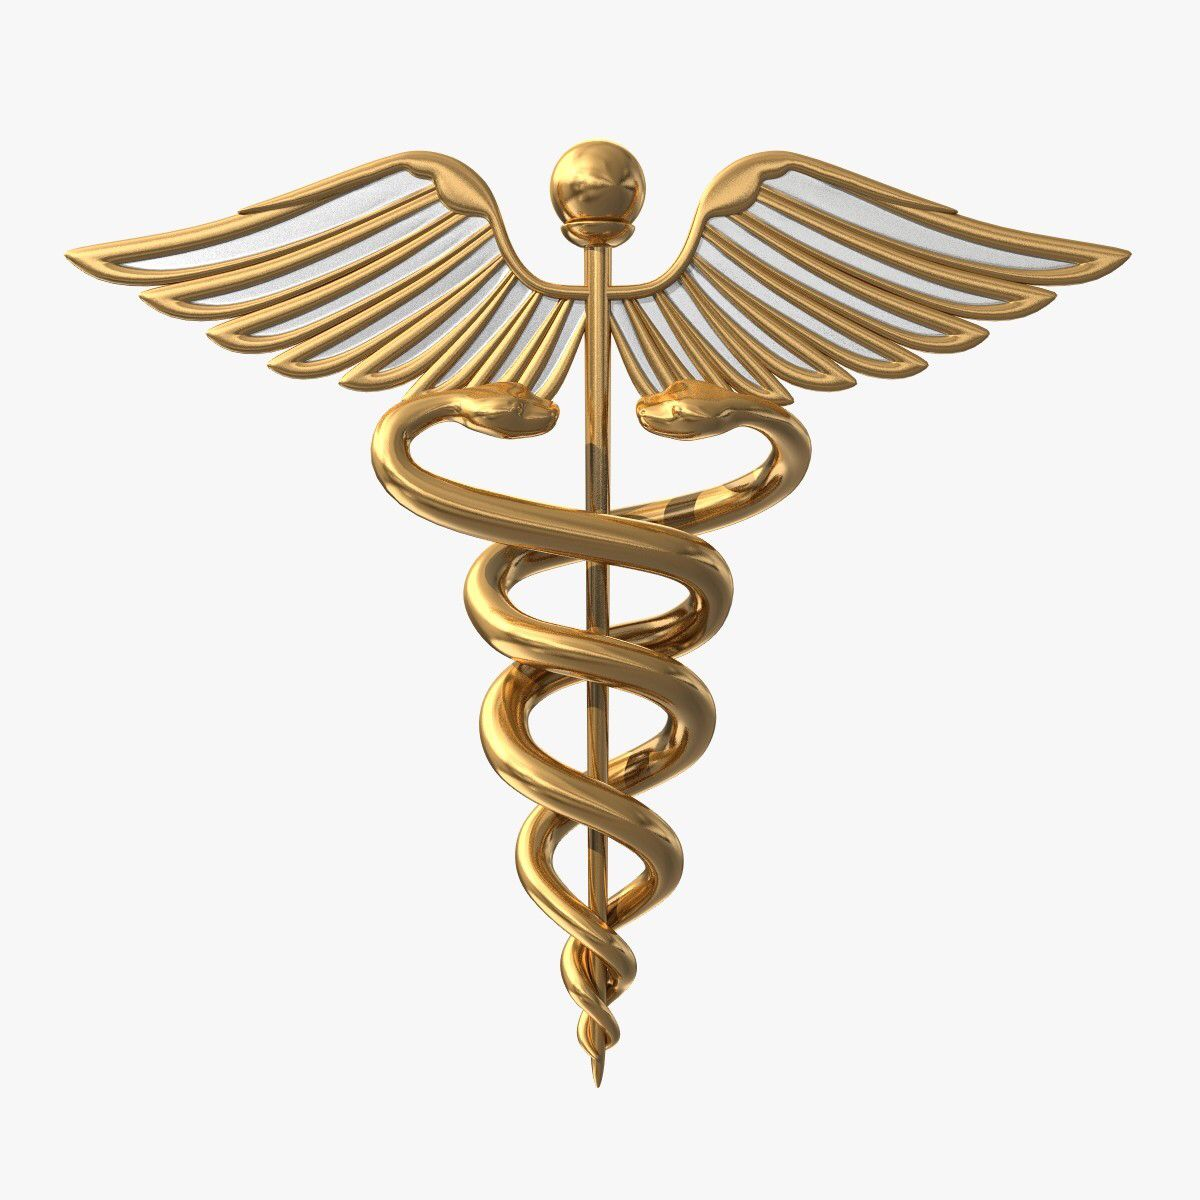 This Is The Staff Hermes Would Carry Around It Represents Two